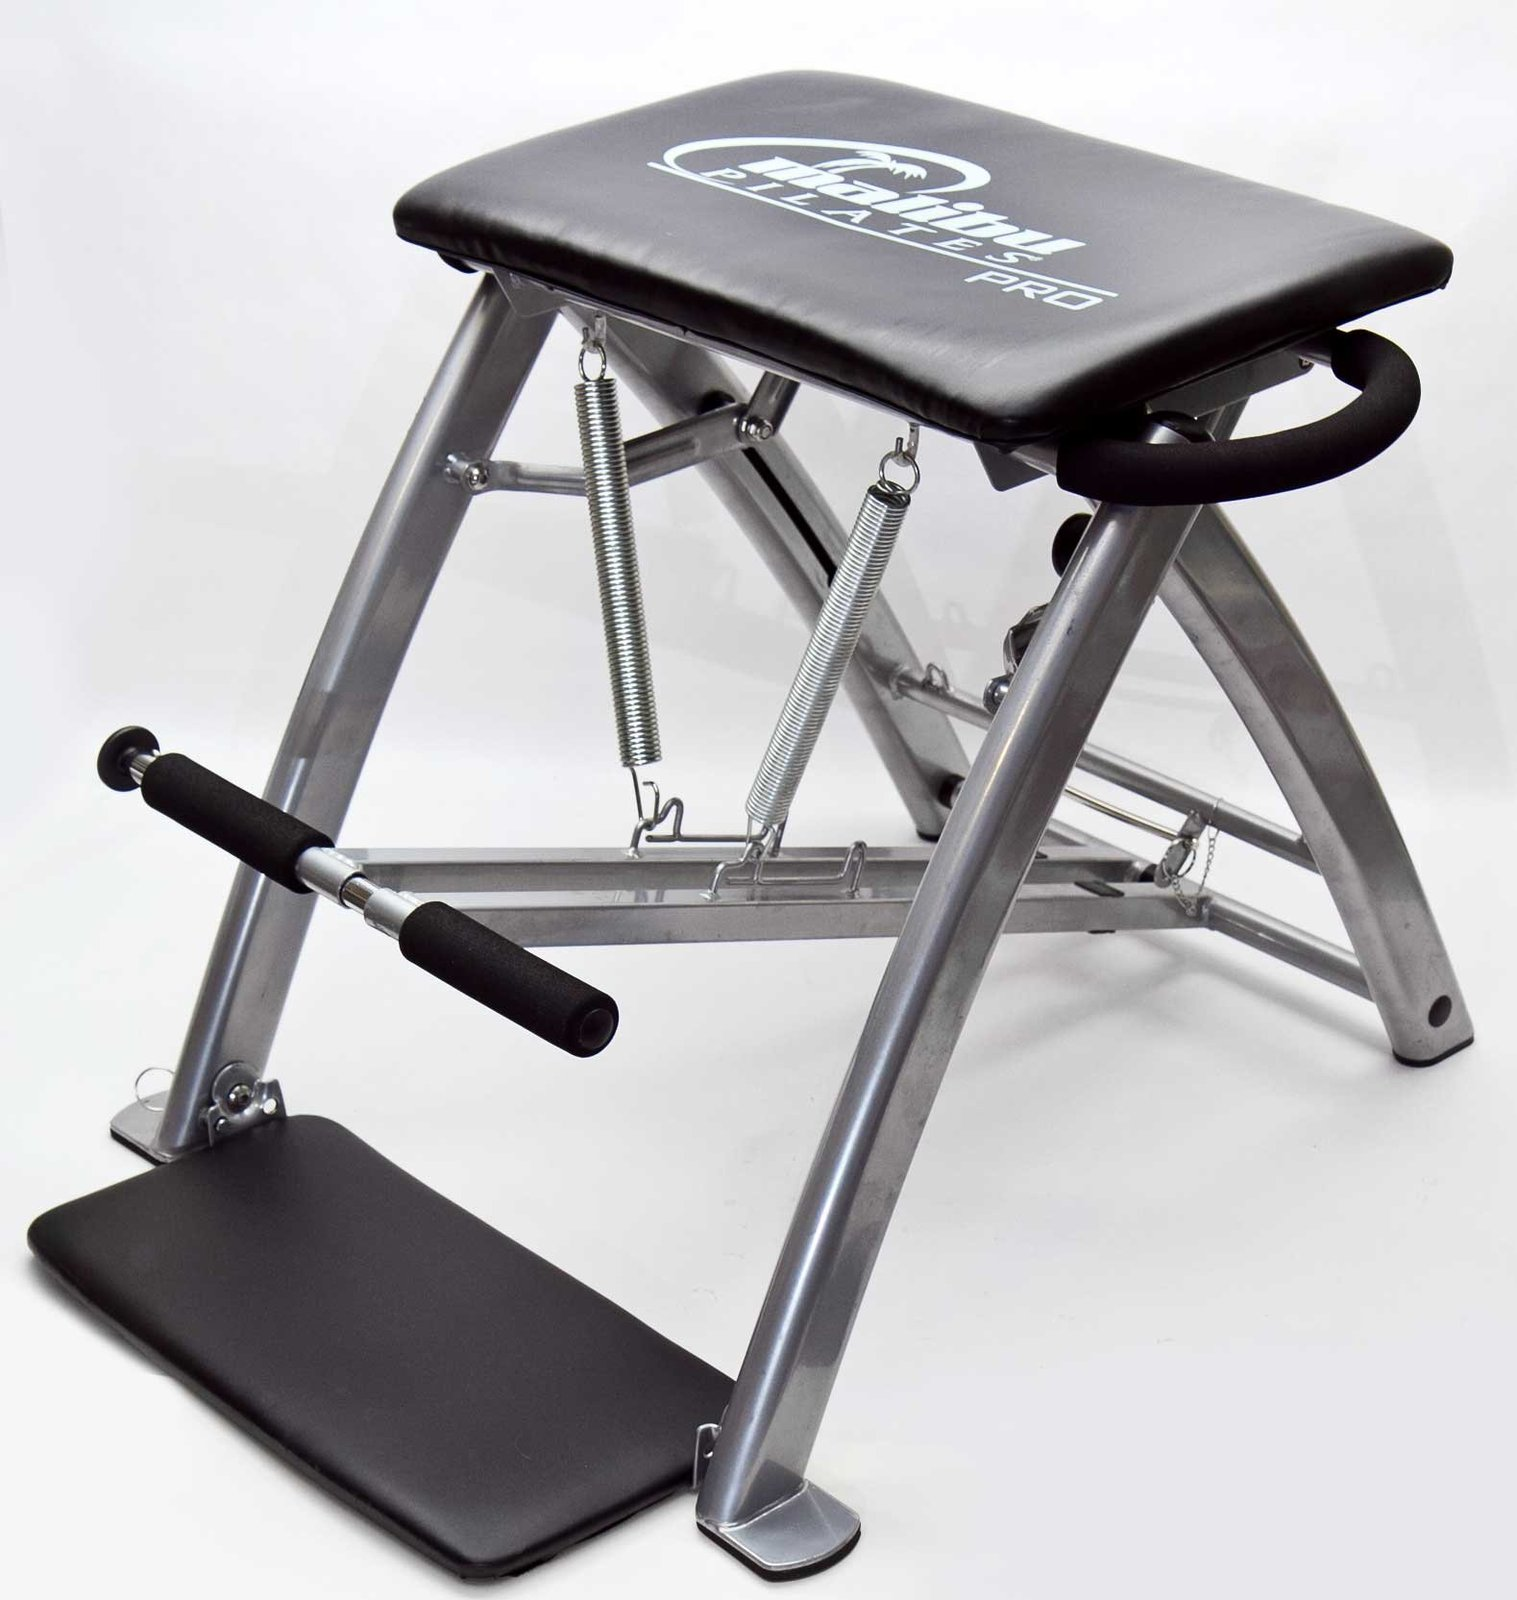 Malibu Pilates Pro Chair Accelerated Results Package Other Yoga Pilates